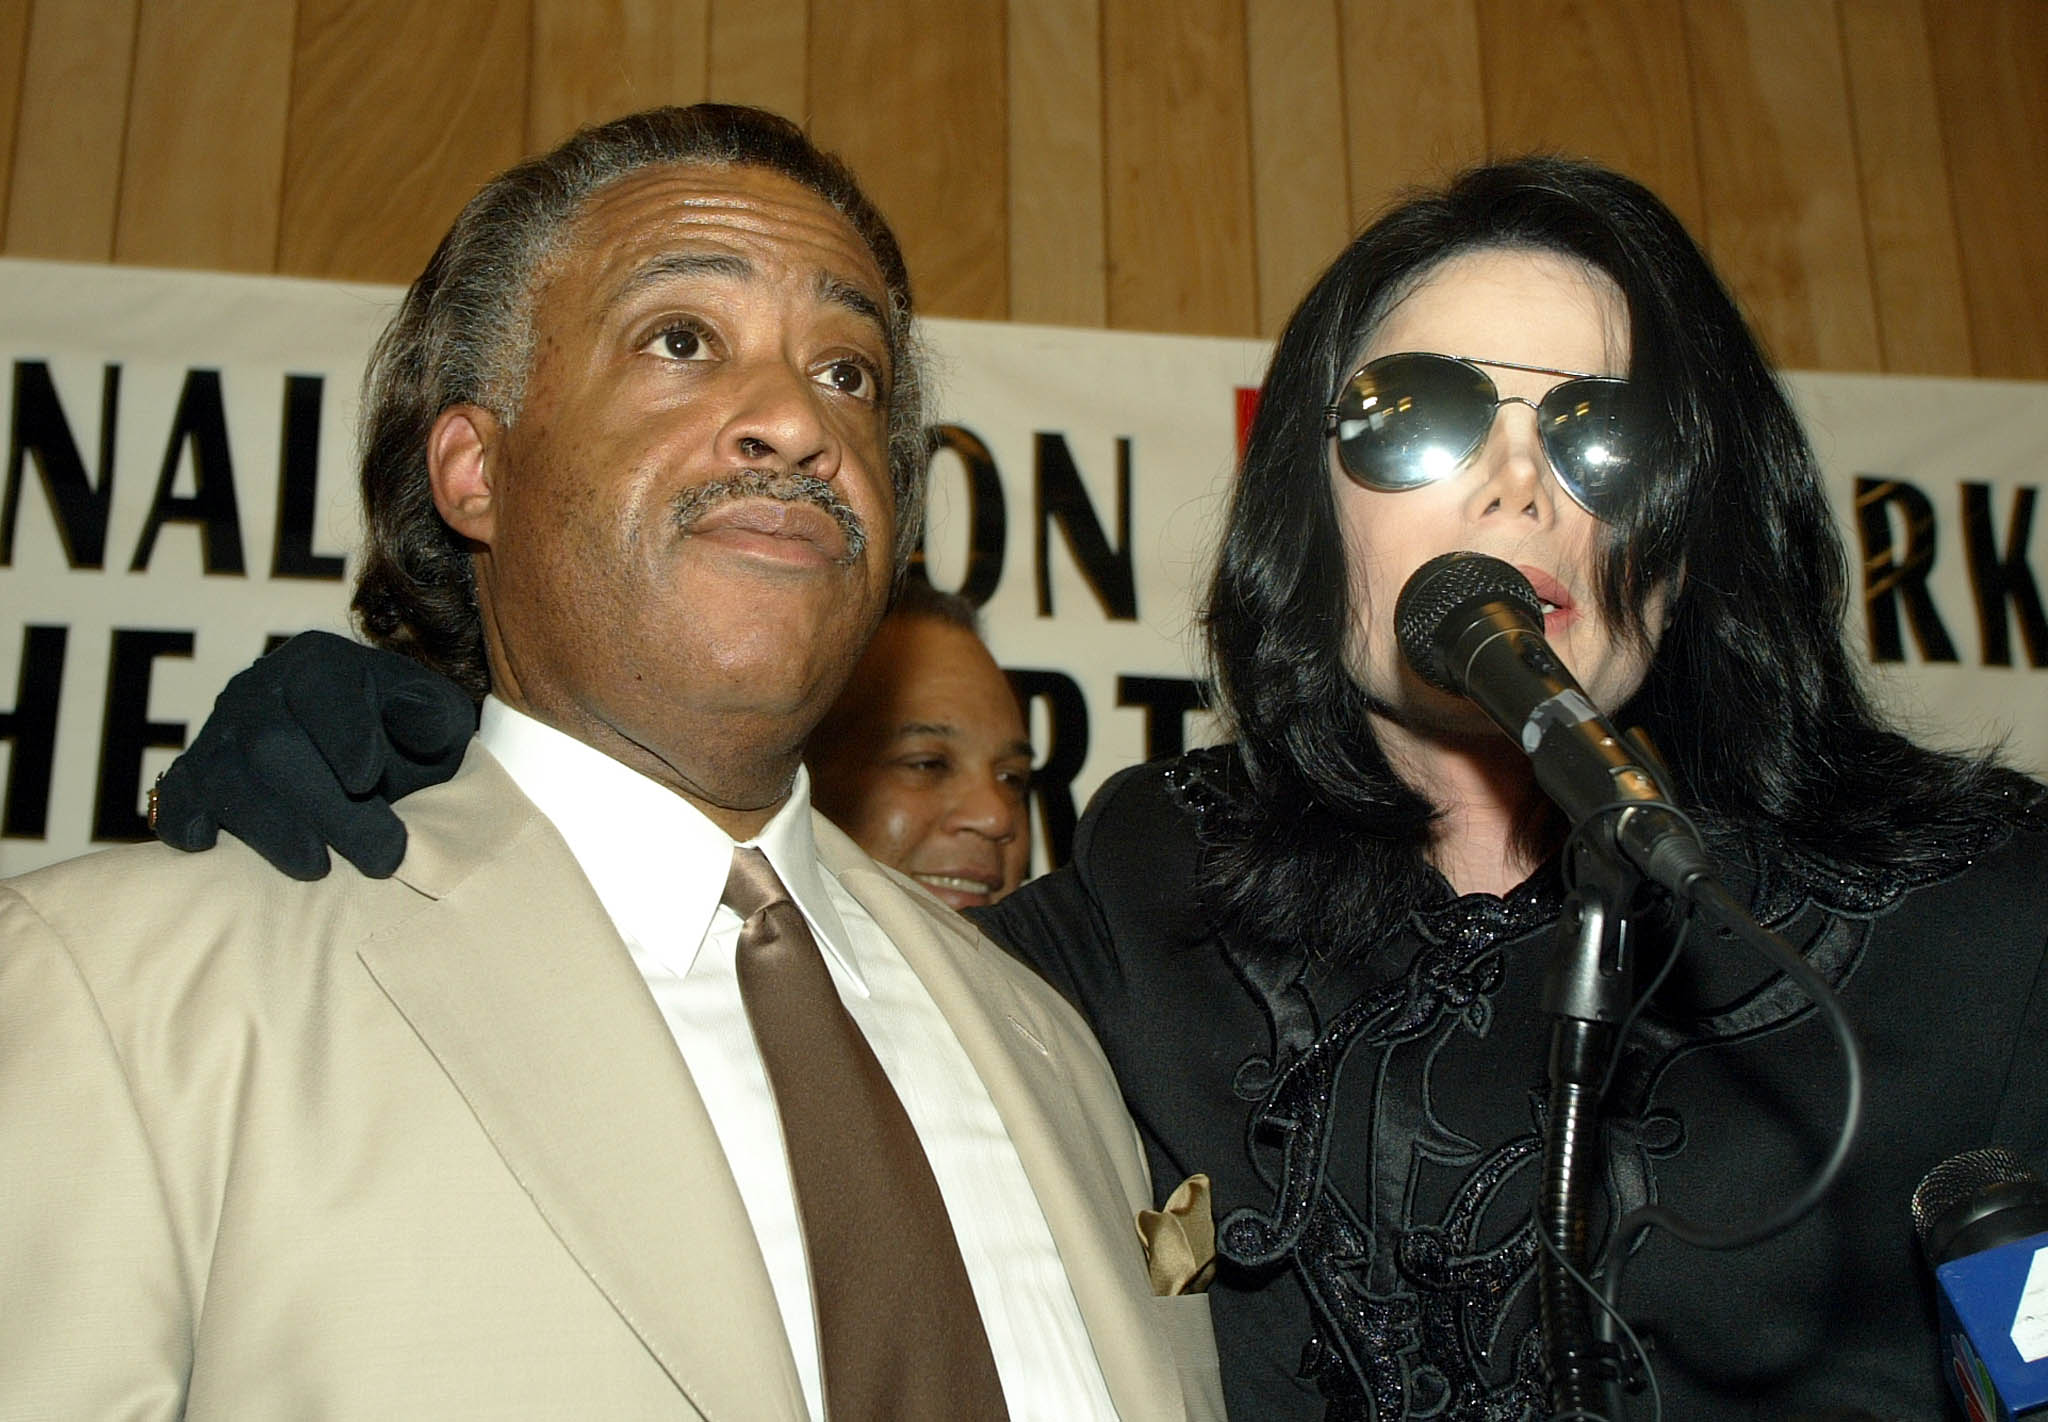 Musician Michael Jackson (R) stands with Rev. Al Sharpton at Sharpton's National Action Network headquarters  in the Harlem neighborhood of New York City on July 6, 2002.